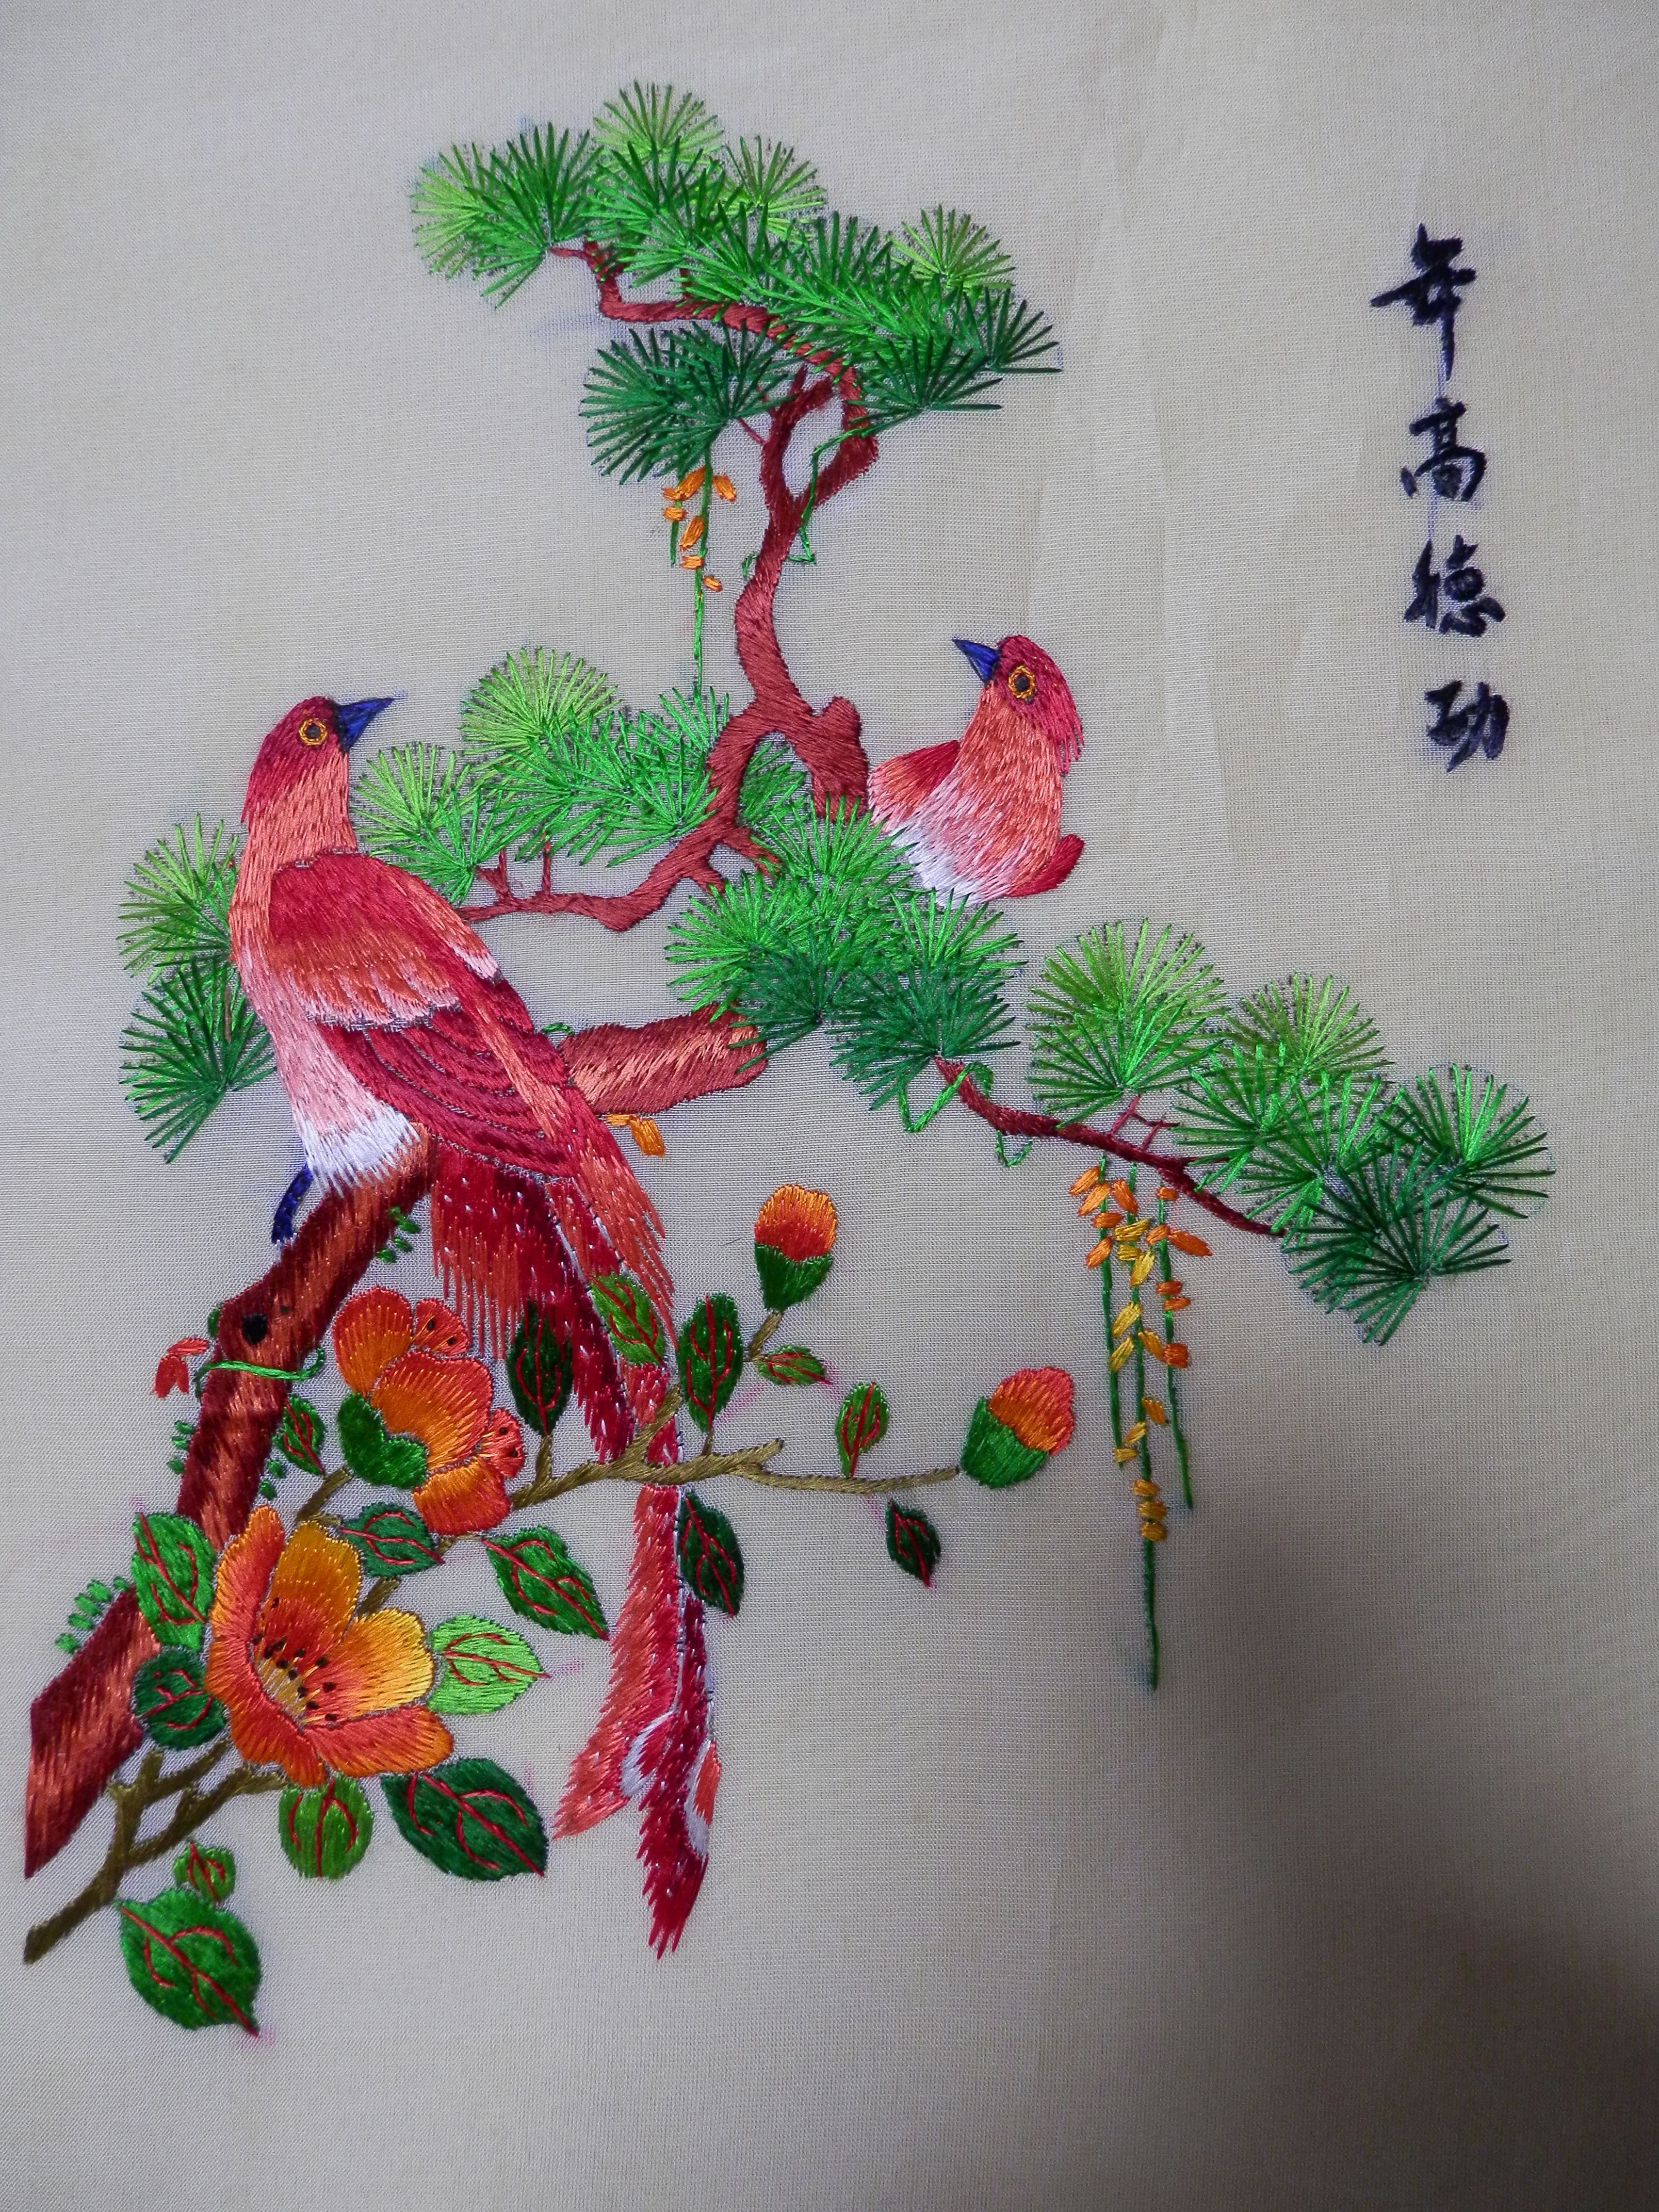 Japanese Silk Embroidery - The EBay Community